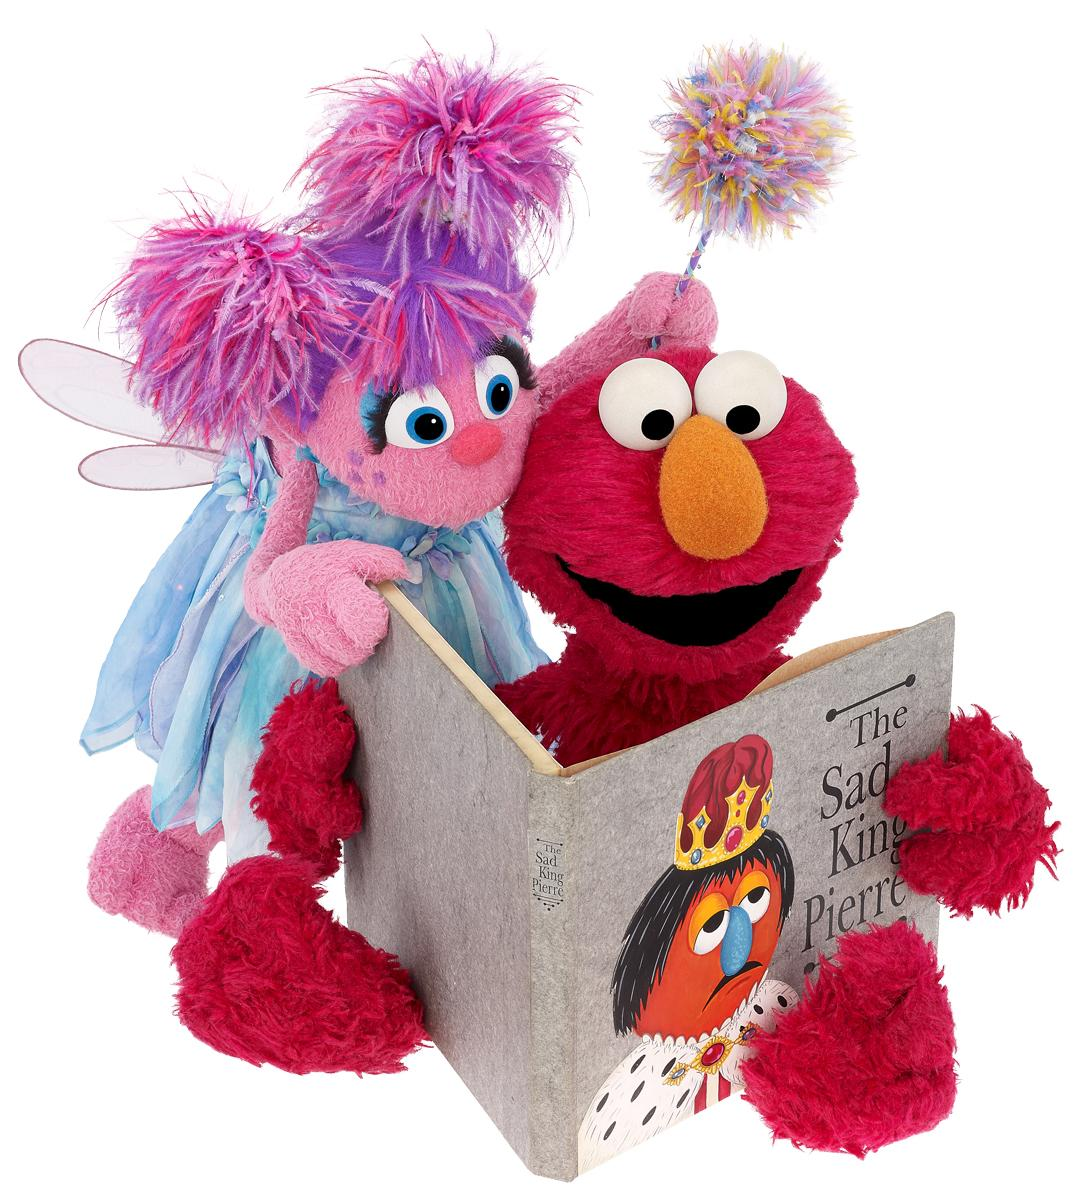 It's National Readathon Day! Everyone on Sesame Street is taking #timetoread! What book will you read today? http://t.co/zME6SqL1VM